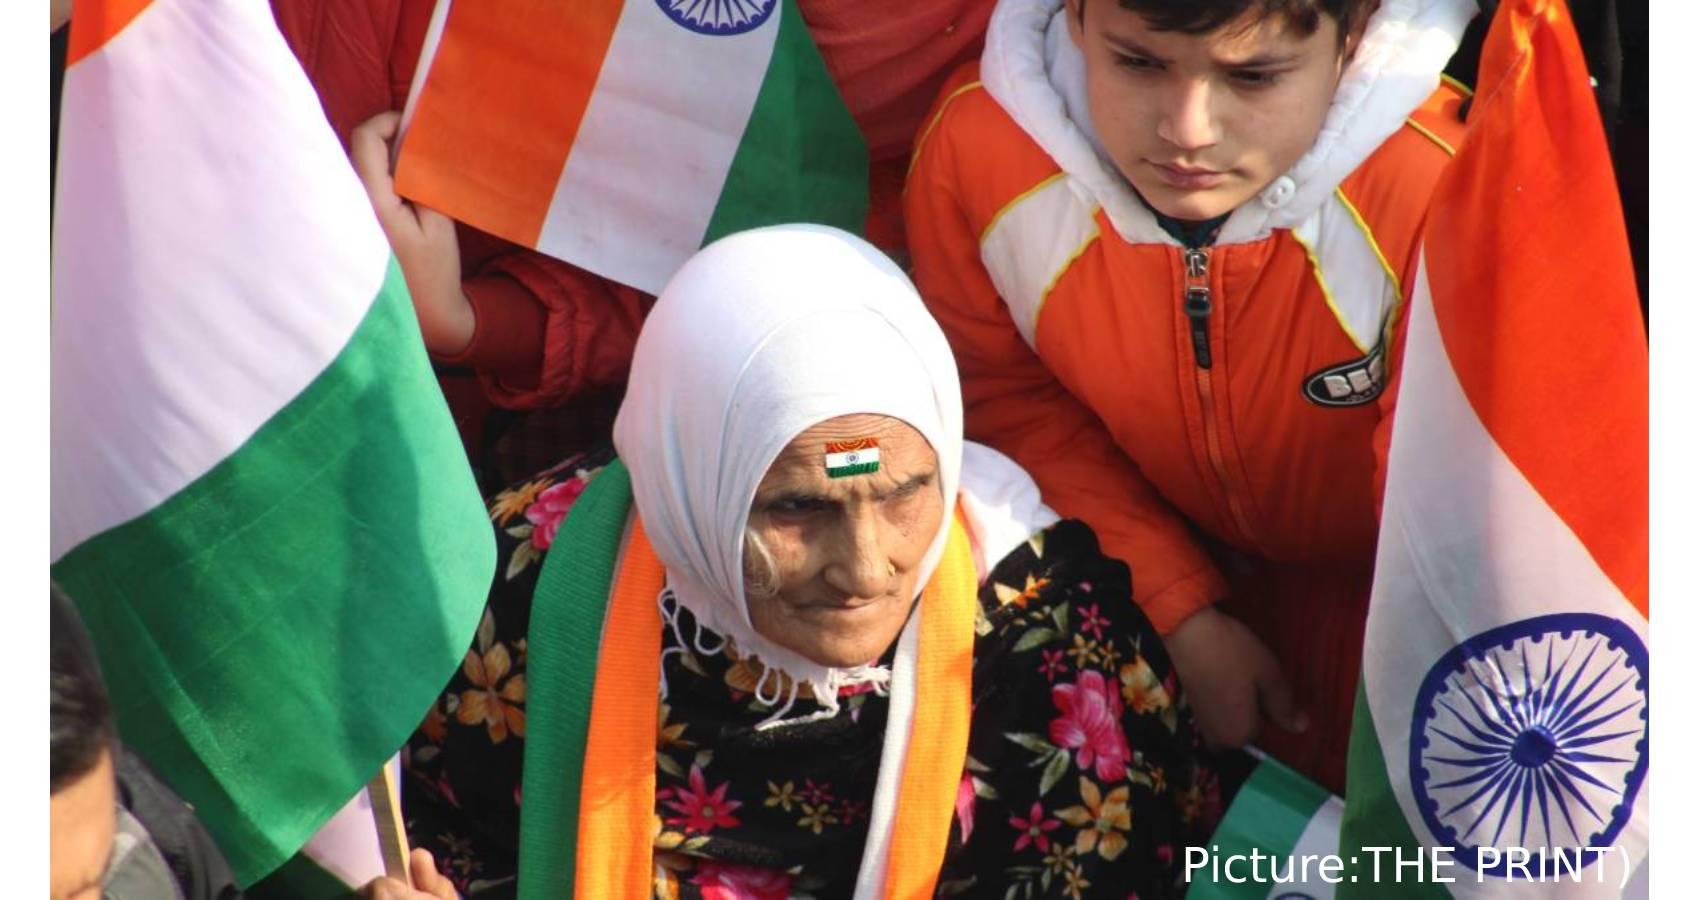 Religious Tolerance Central To Indians' Identity, Pew Survey Finds